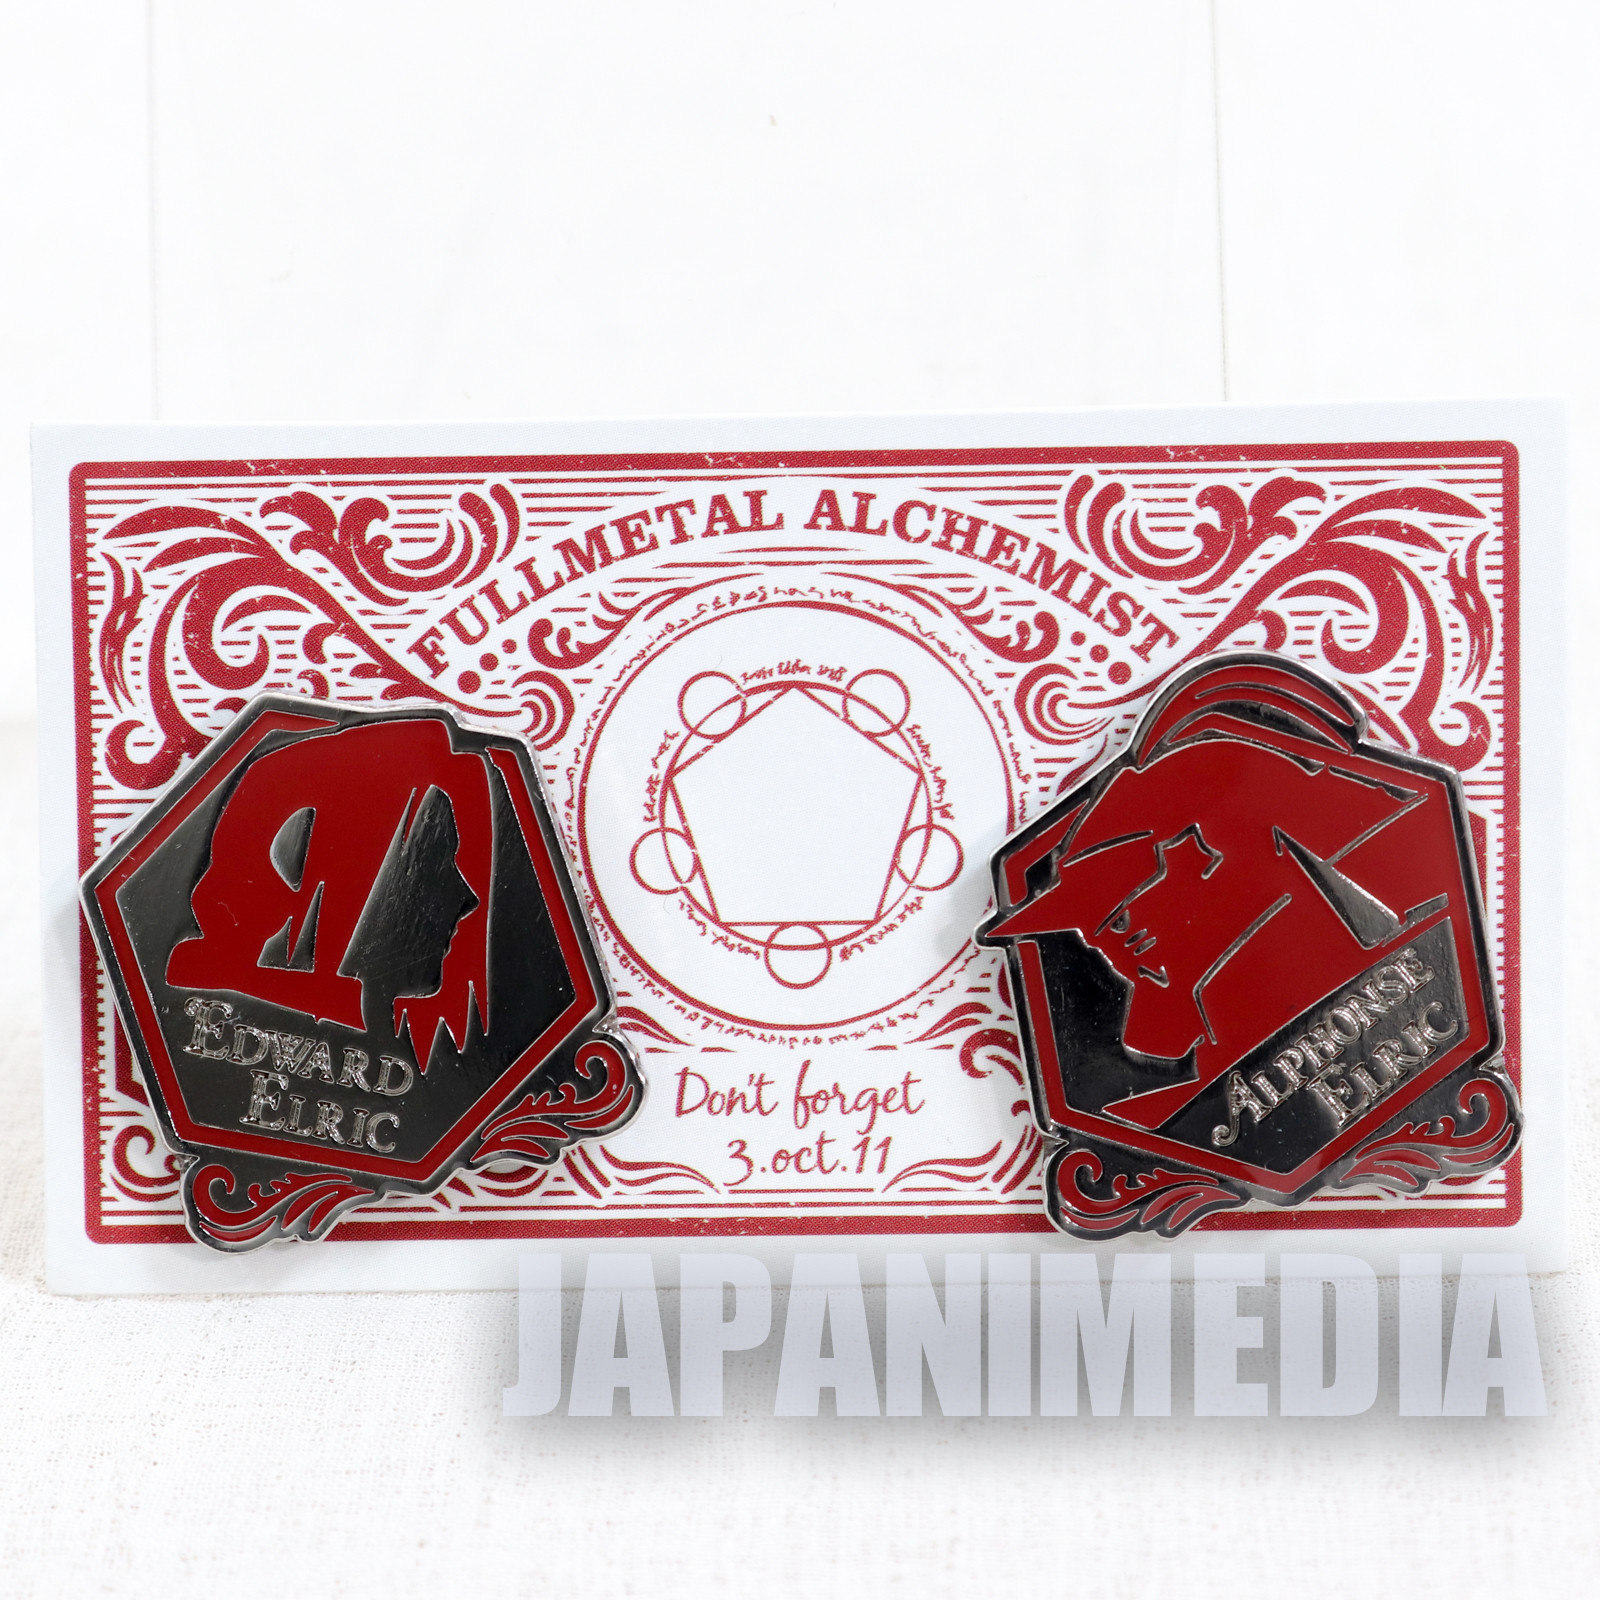 FullMetal Alchemist Edward Elric Metal Pins 2pc set JAPAN ANIME